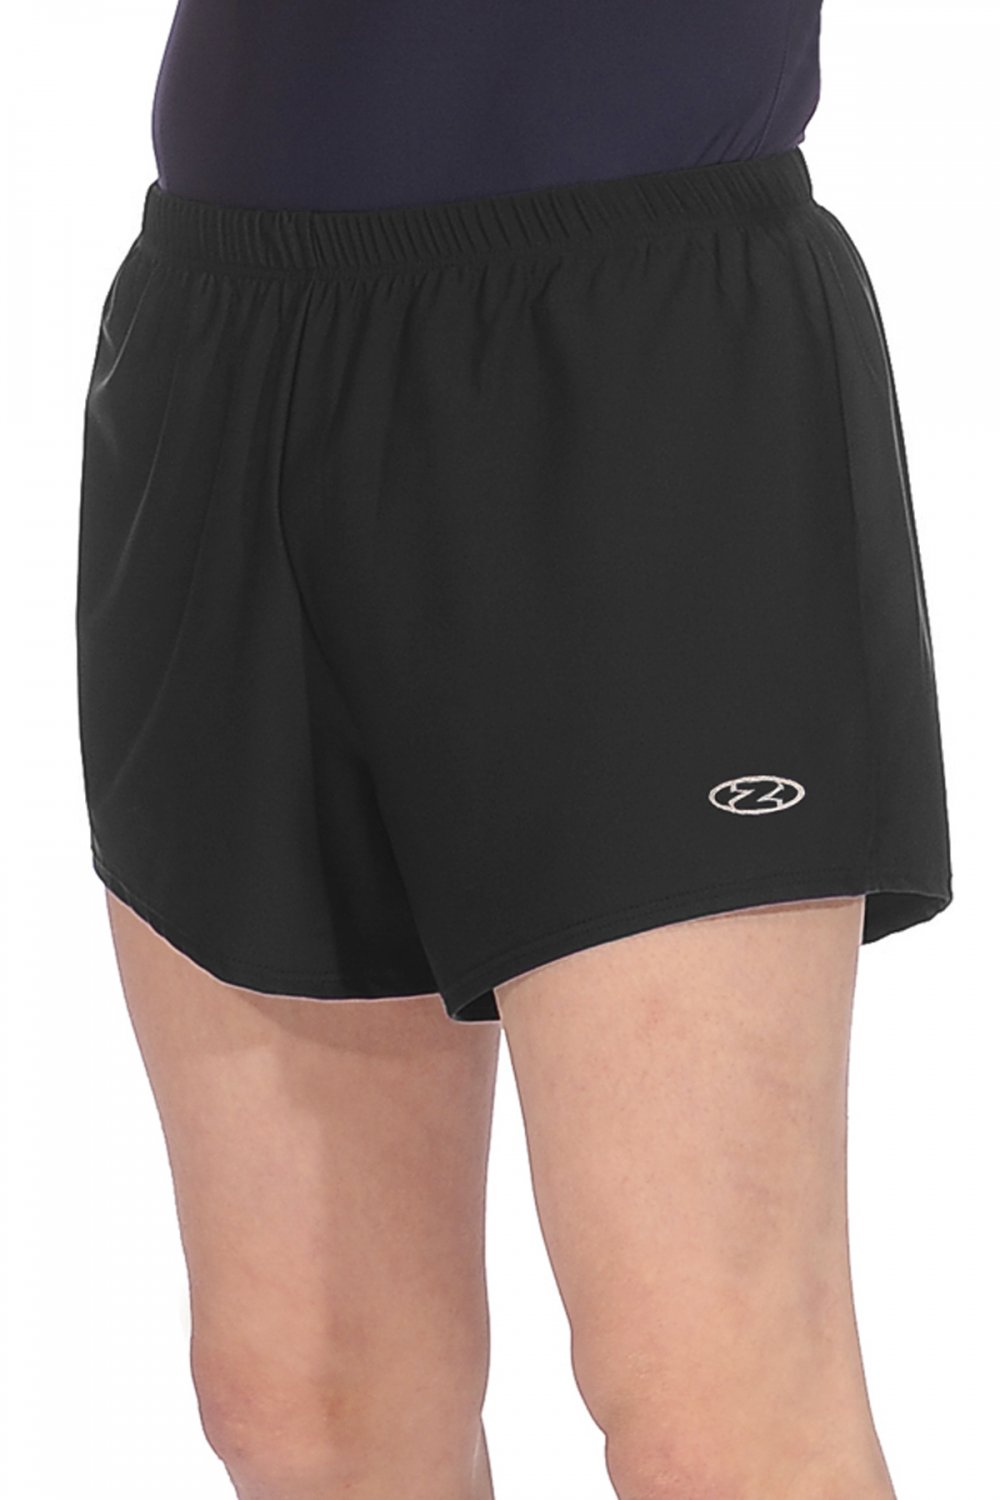 Z121 BLACK Boys Gymnastic Shorts New Boys-Mens Zone Gymnastic Shorts